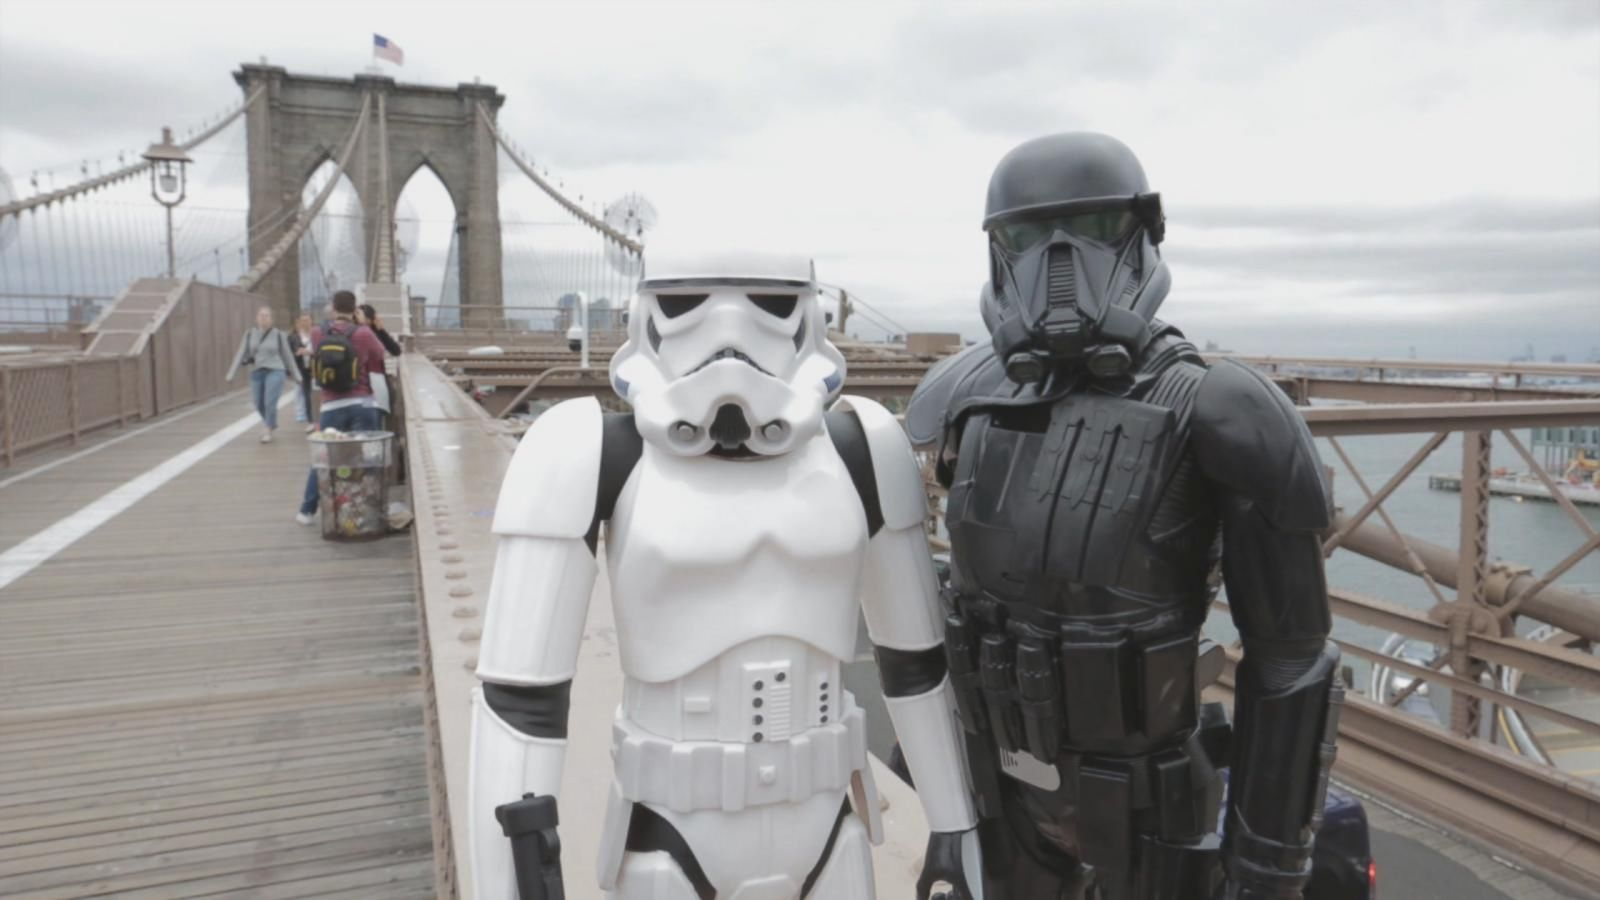 Star Wars Toys 'Go Rogue' and Take Manhattan by Storm